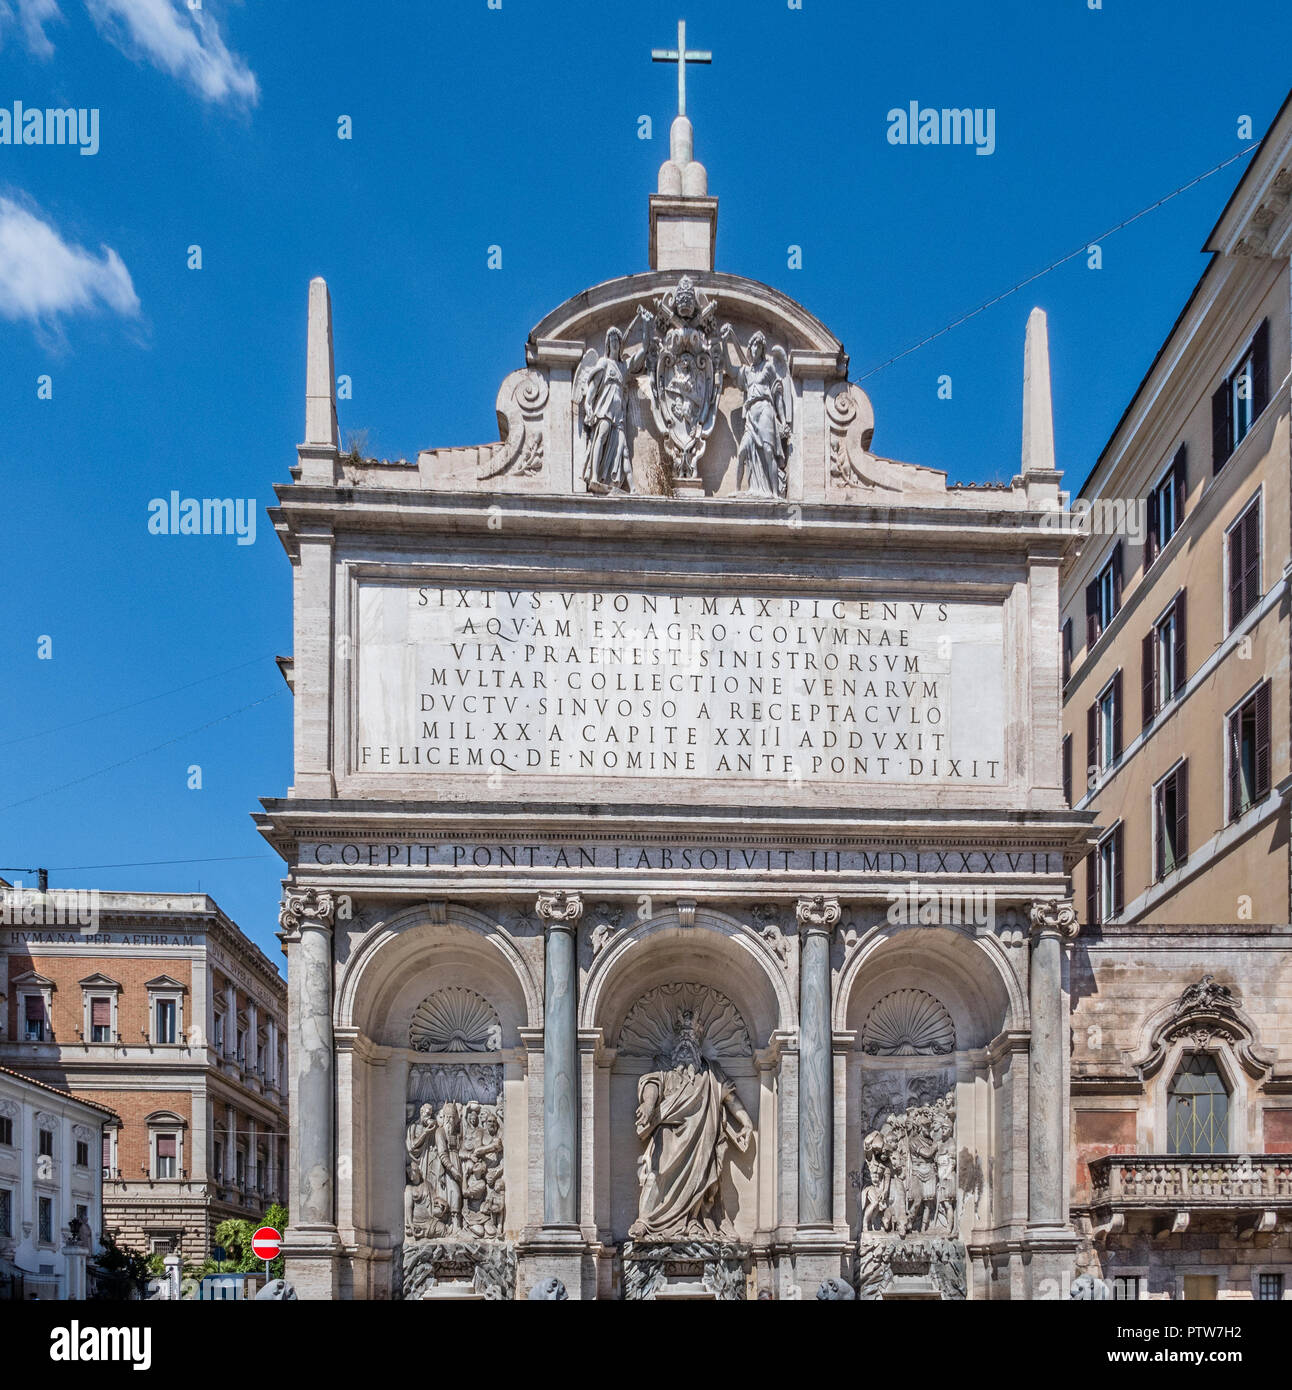 Fontana dell'Acqua Felice, known as Fountain of Moses, with a dominant statue of Moses in the centre of the Roman triumphal arch in the Metropolitan C - Stock Image